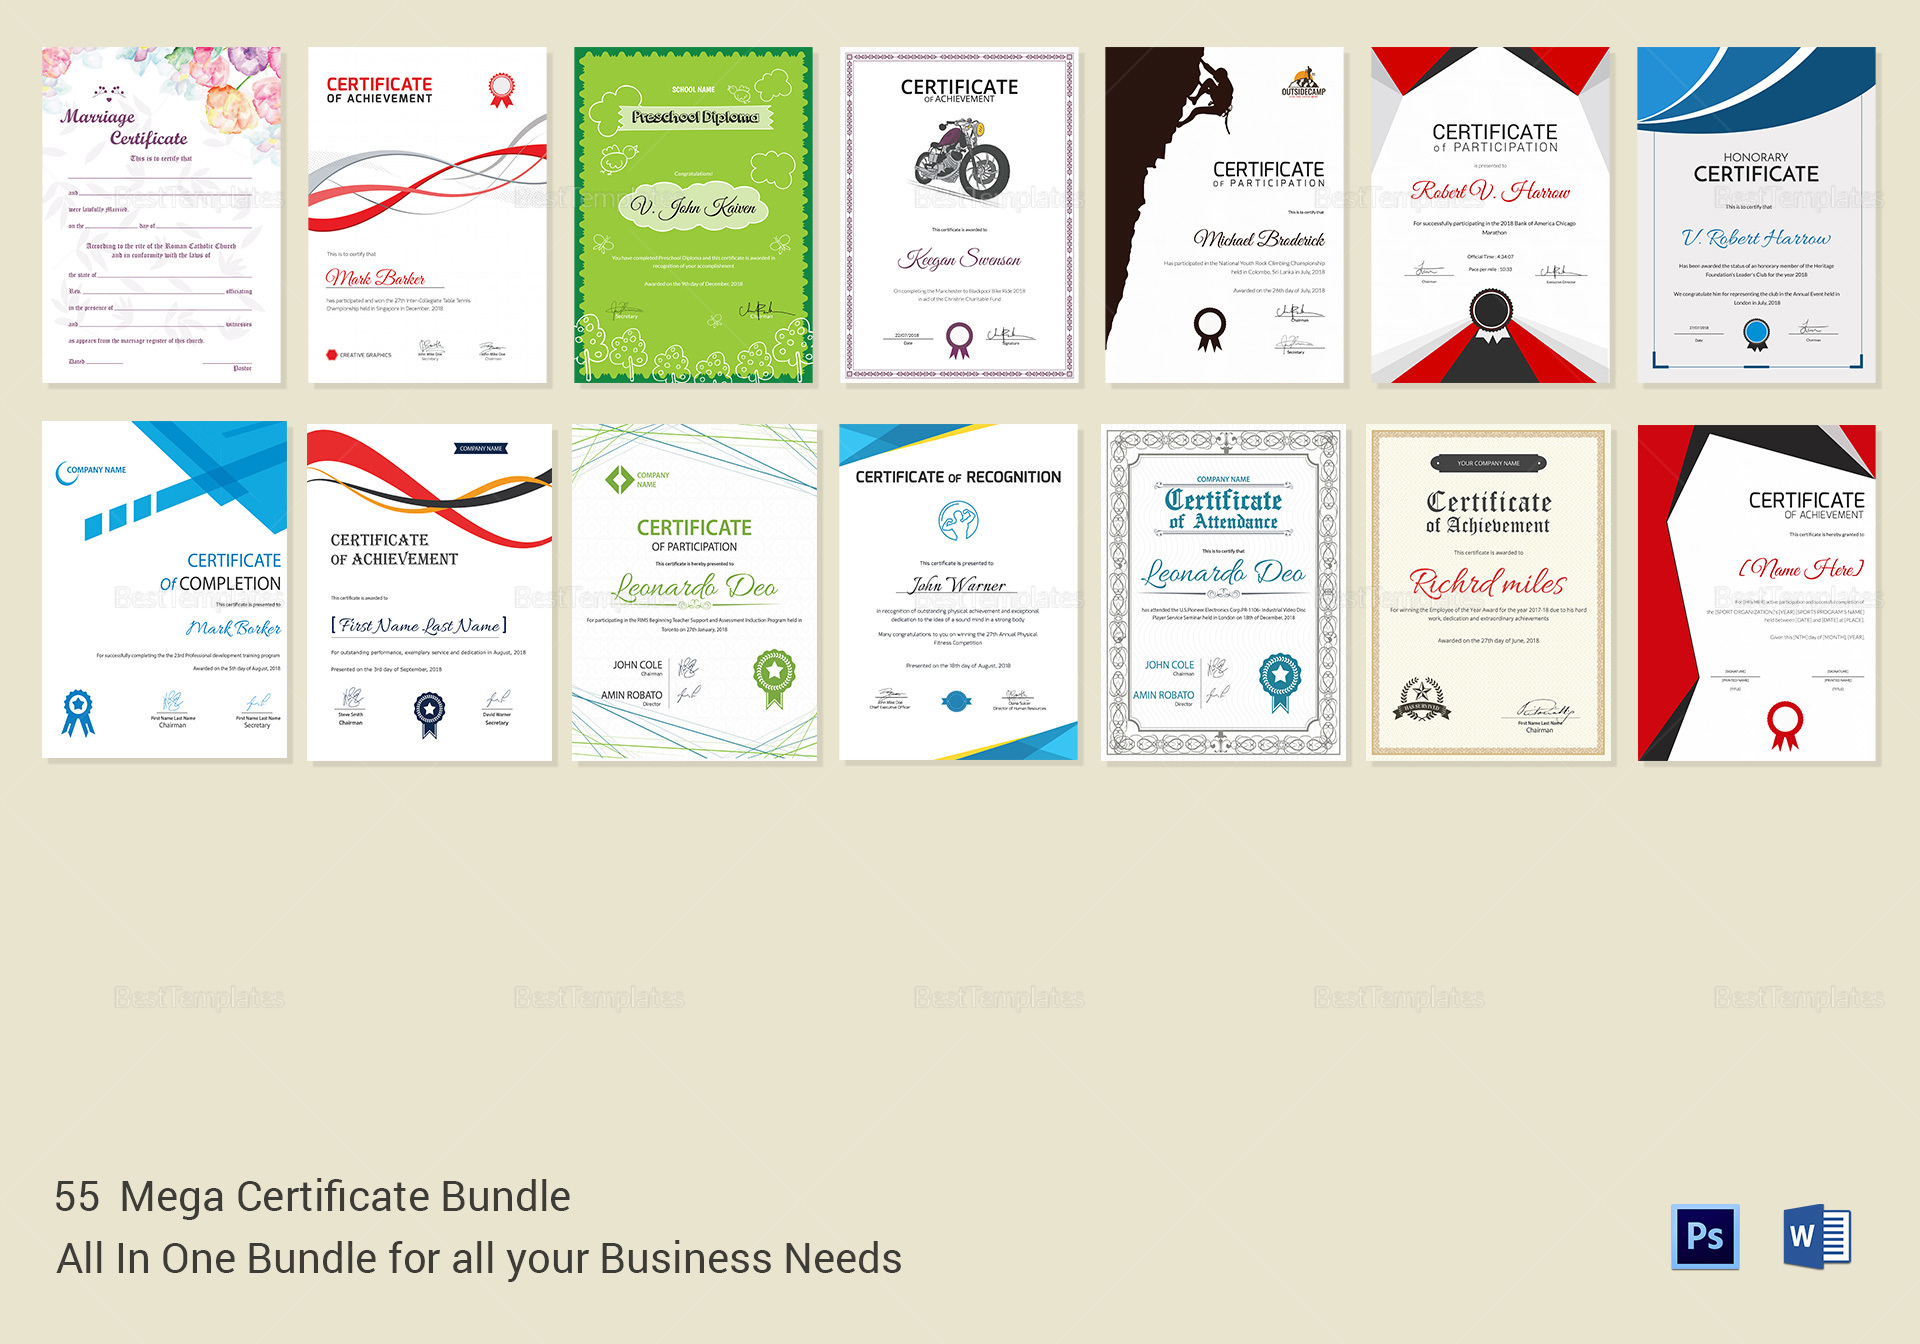 Mega Certificate bundle templates 2